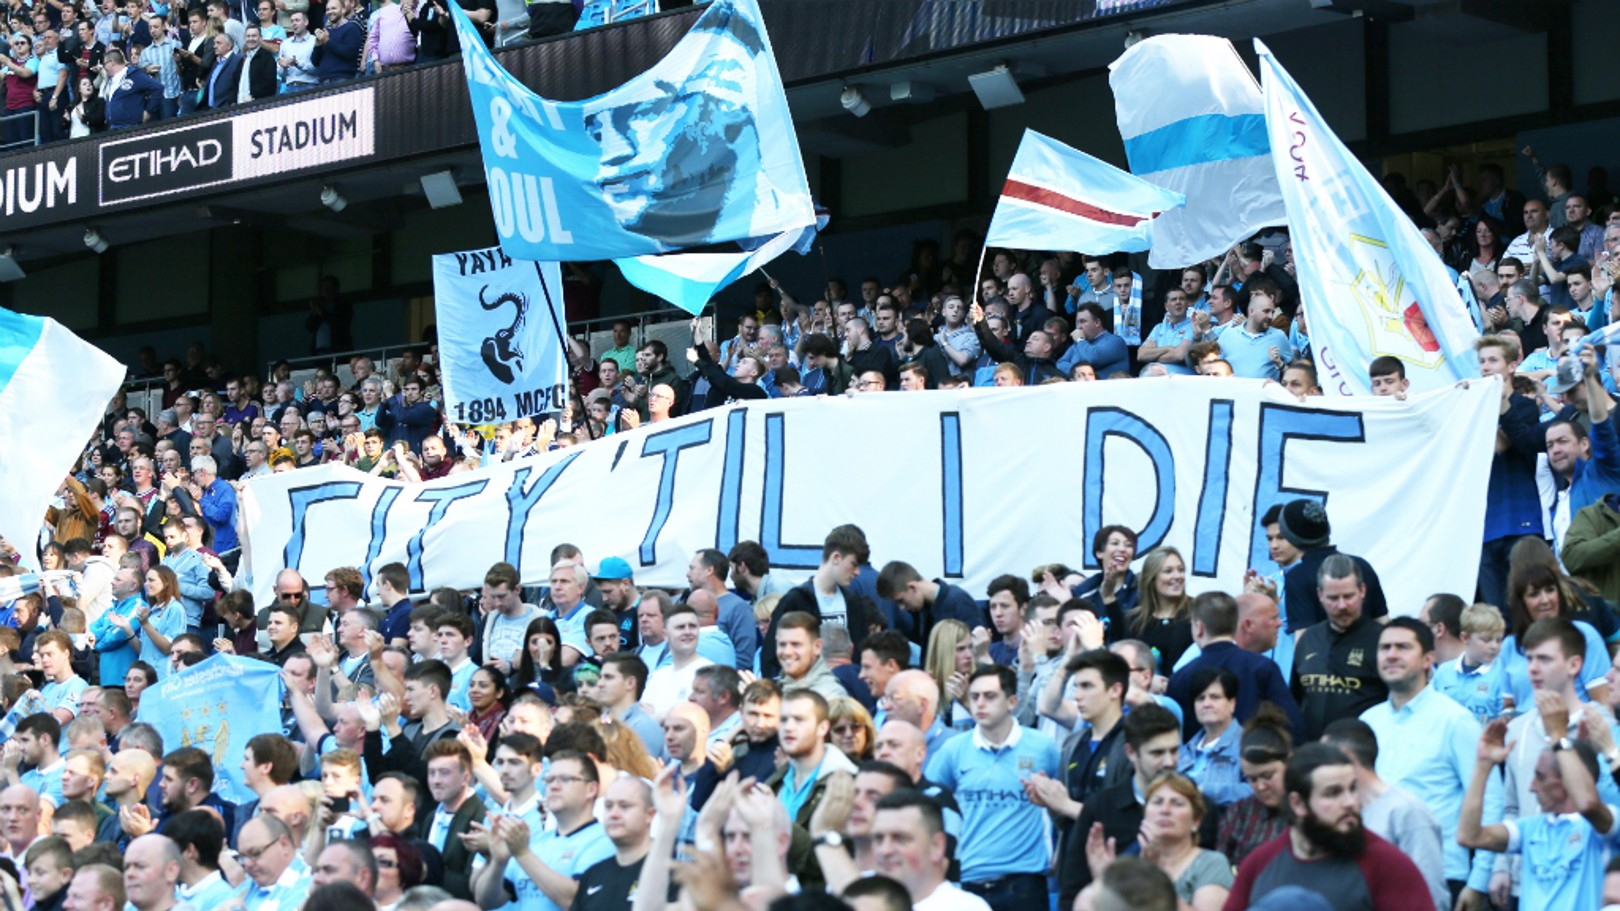 BLUE ARMY: A sea of blue and white in the South Stand